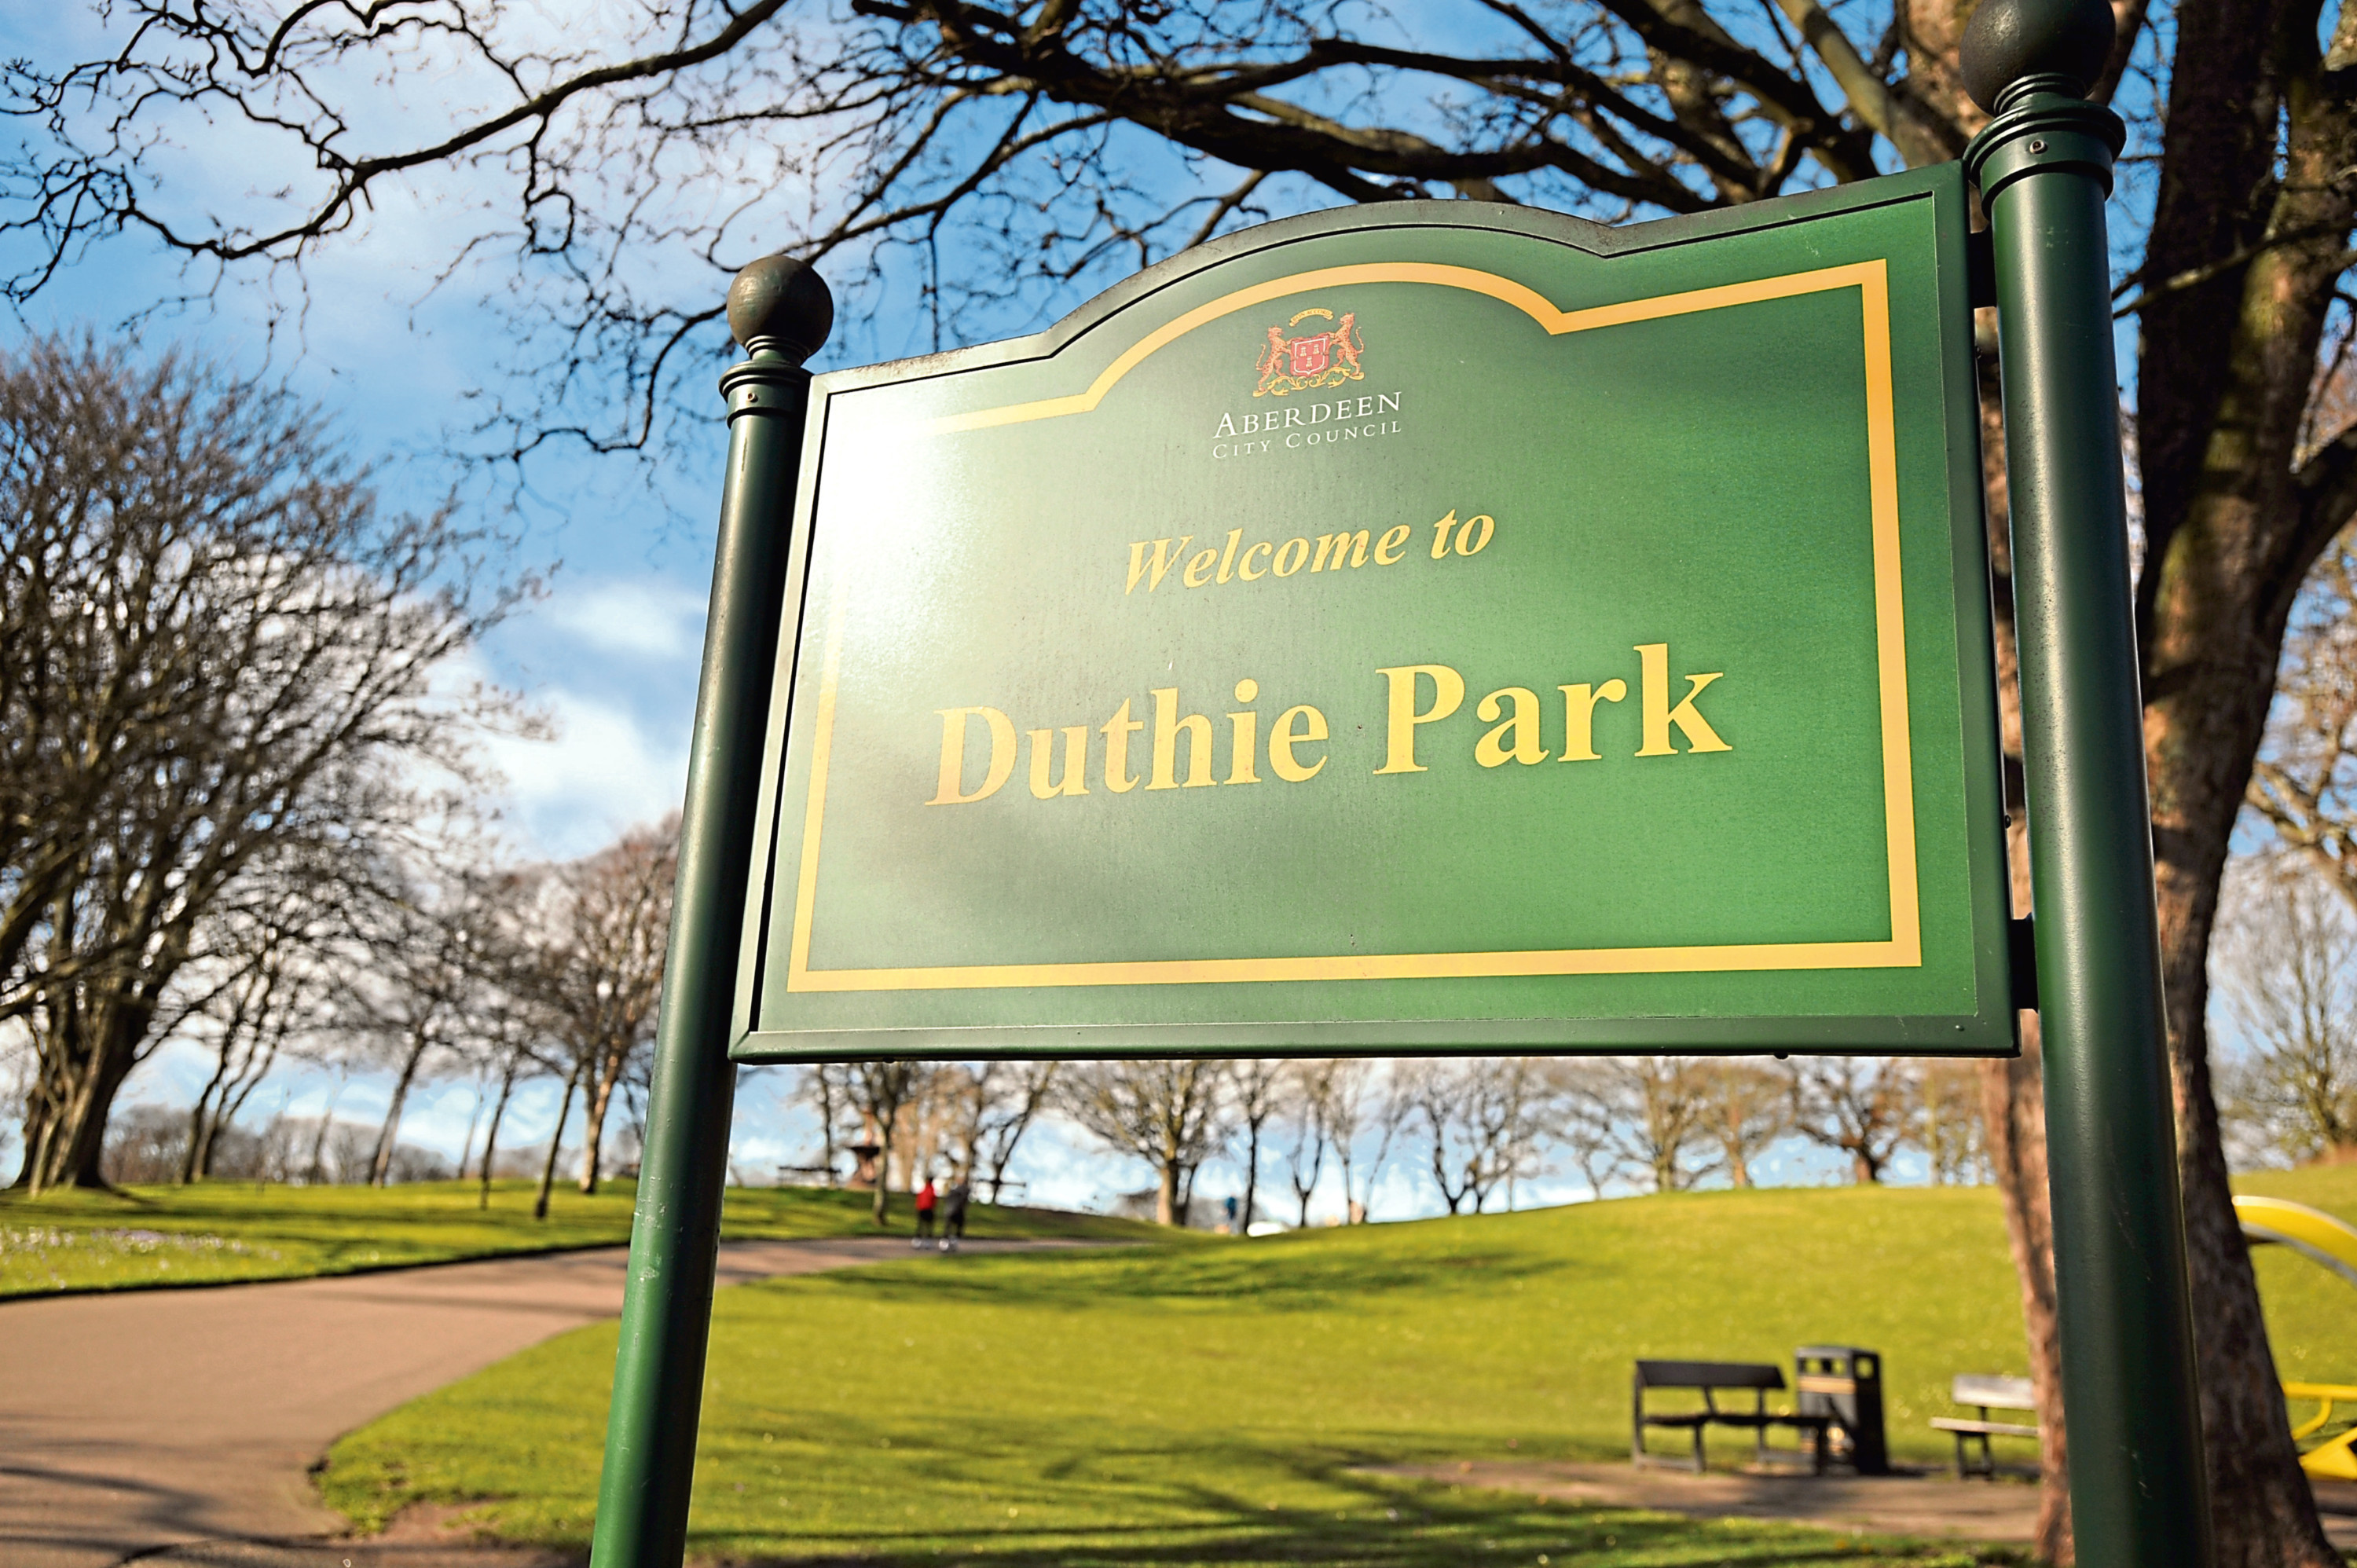 The 10km walk will start at Duthie Park